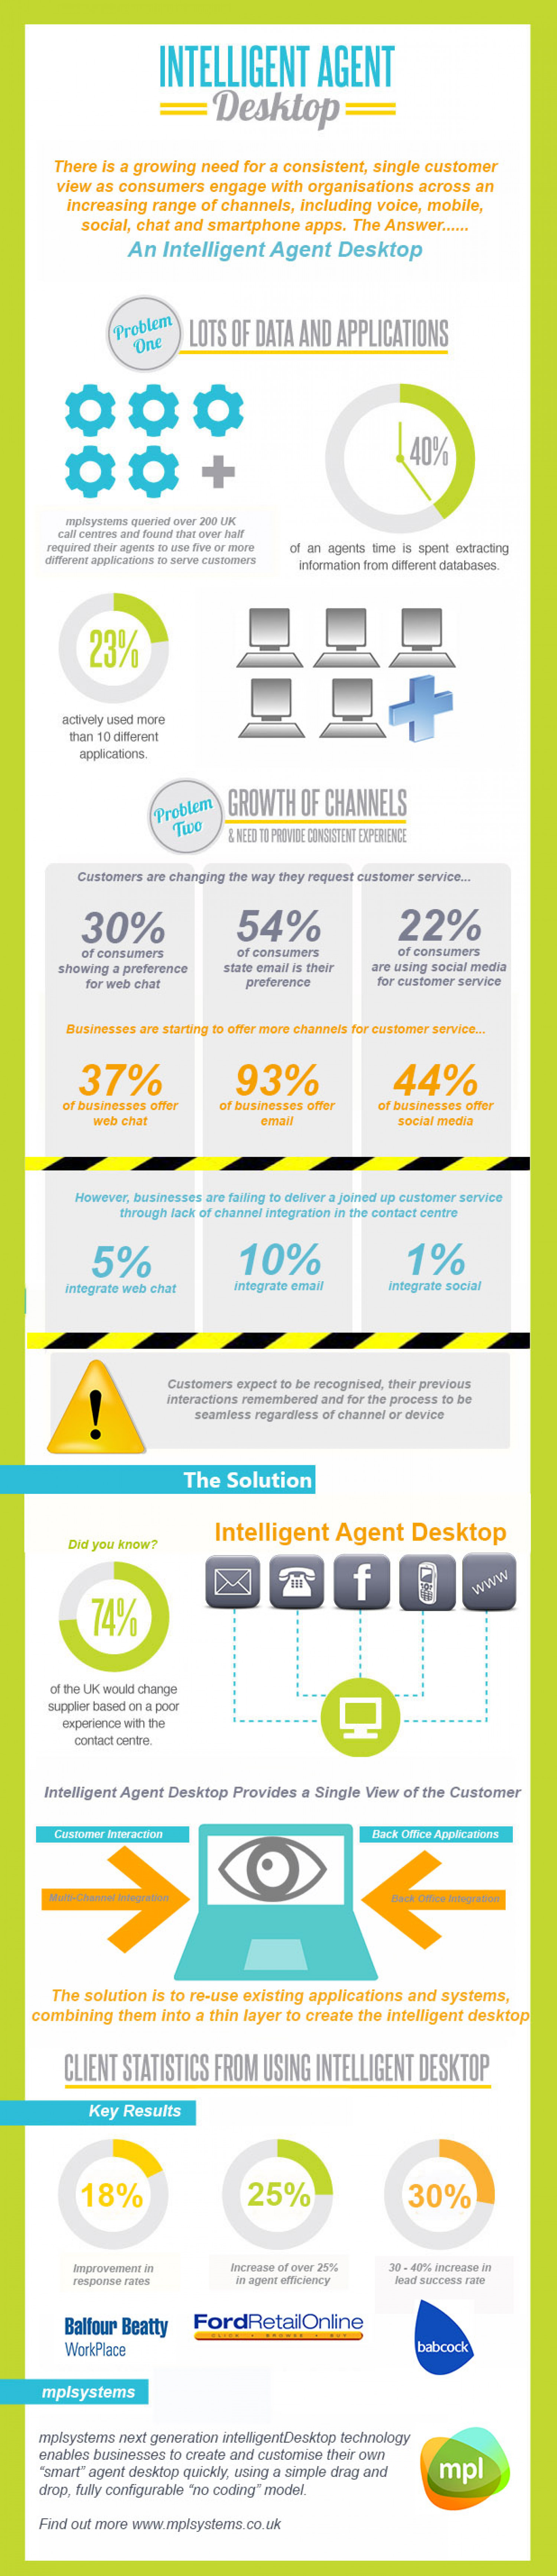 Intelligent Agent Desktop Infographic